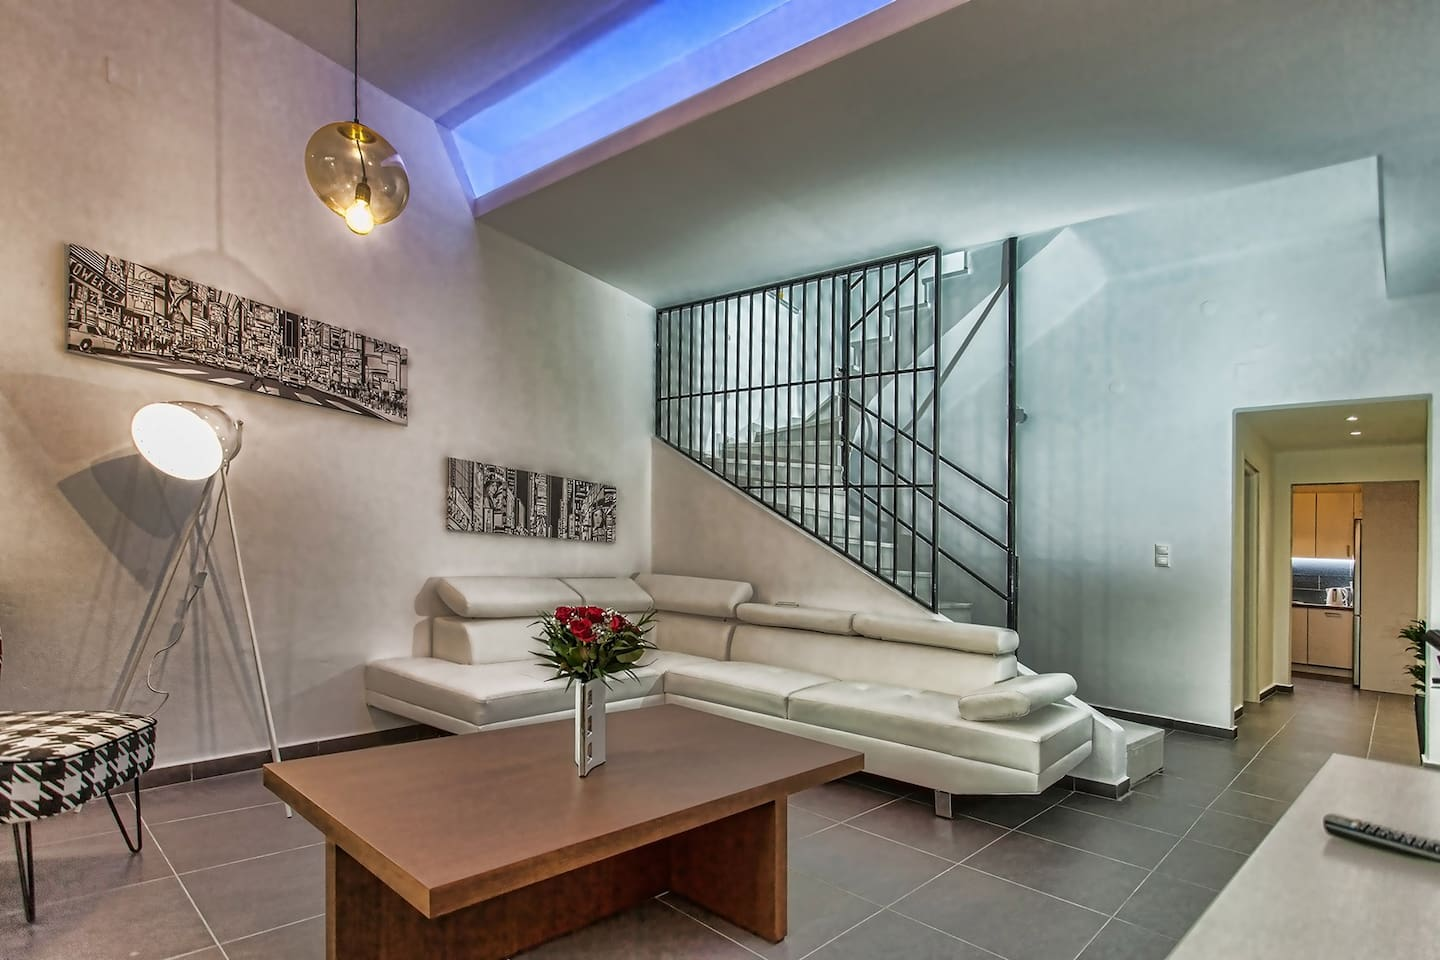 Loggia Loft apartment is recently renovated and modernly decorated!